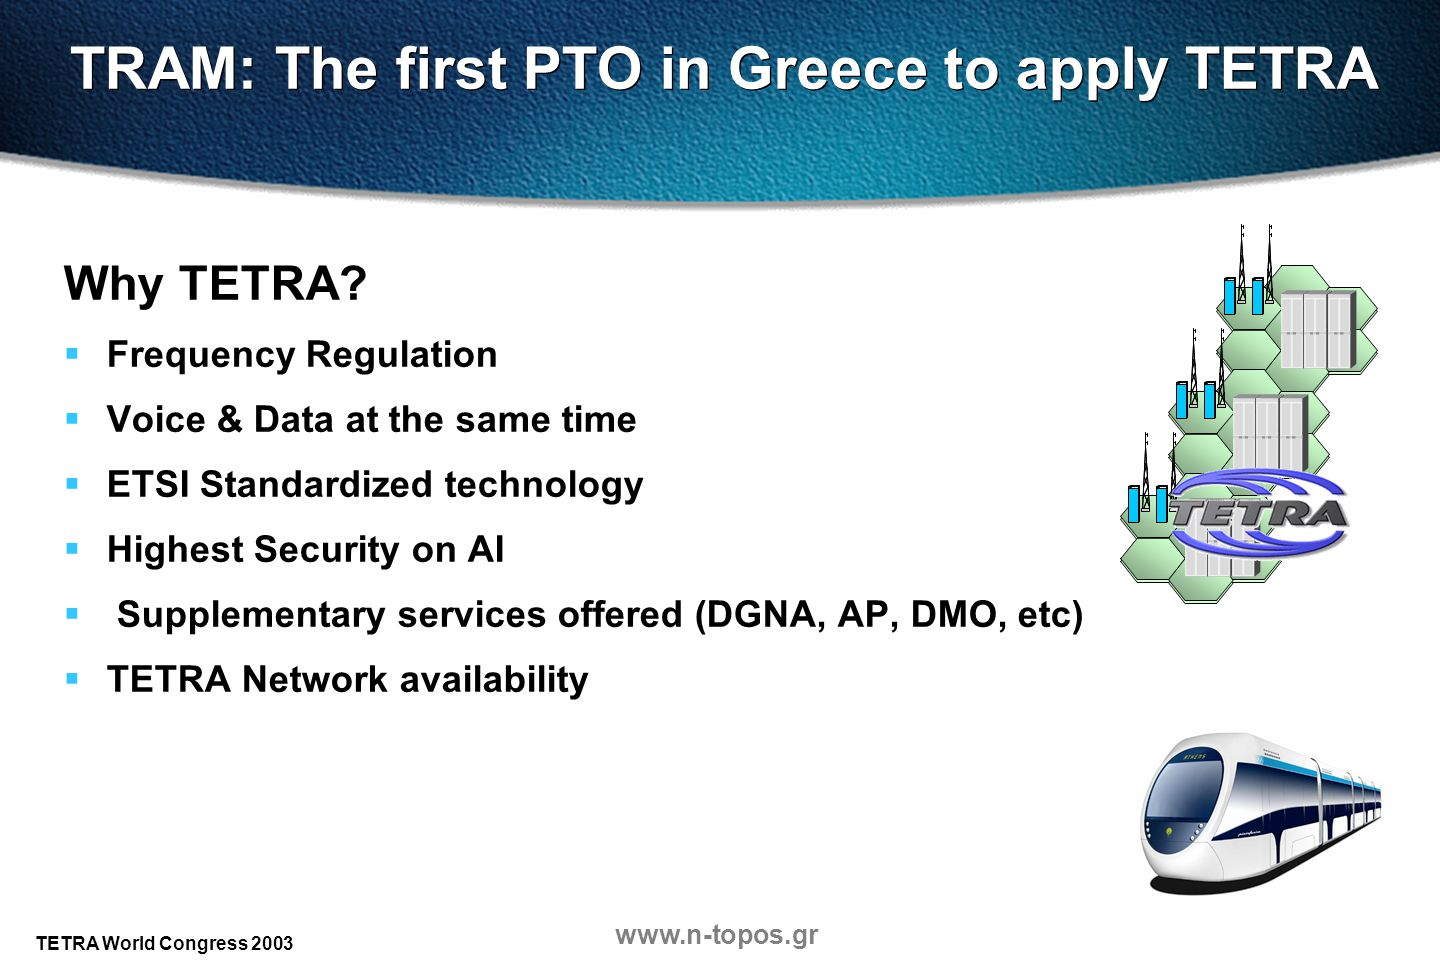 www.n-topos.gr TETRA World Congress 2003 TRAM: The first PTO in Greece to apply TETRA Why TETRA? Frequency Regulation Voice & Data at the same time ET